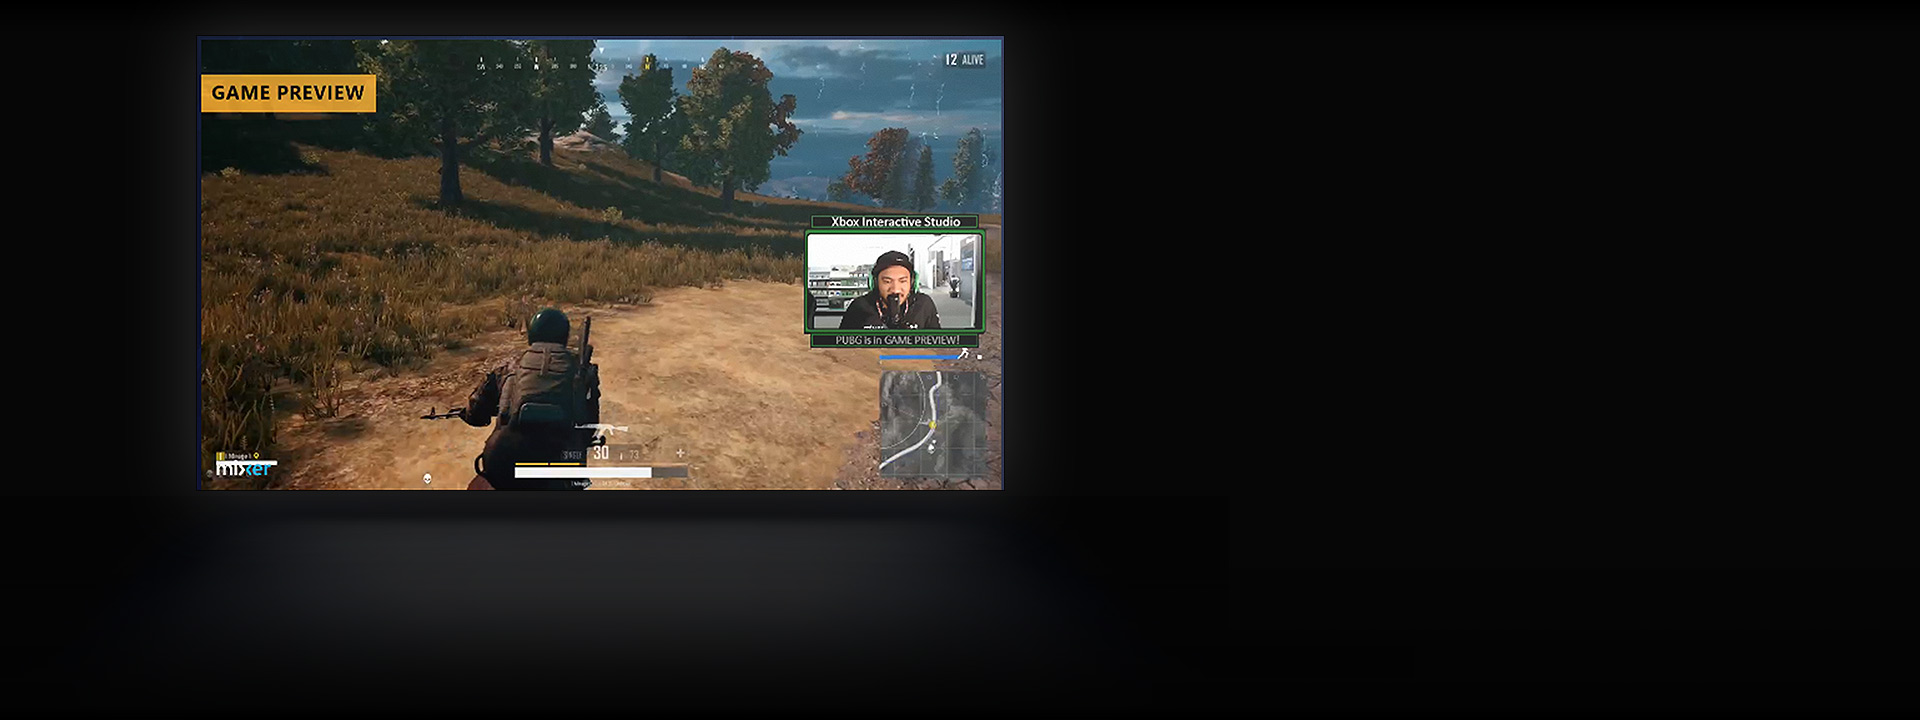 Tela de televisão que mostra um streaming do Mixer do PlayerUnknown's Battlegrounds